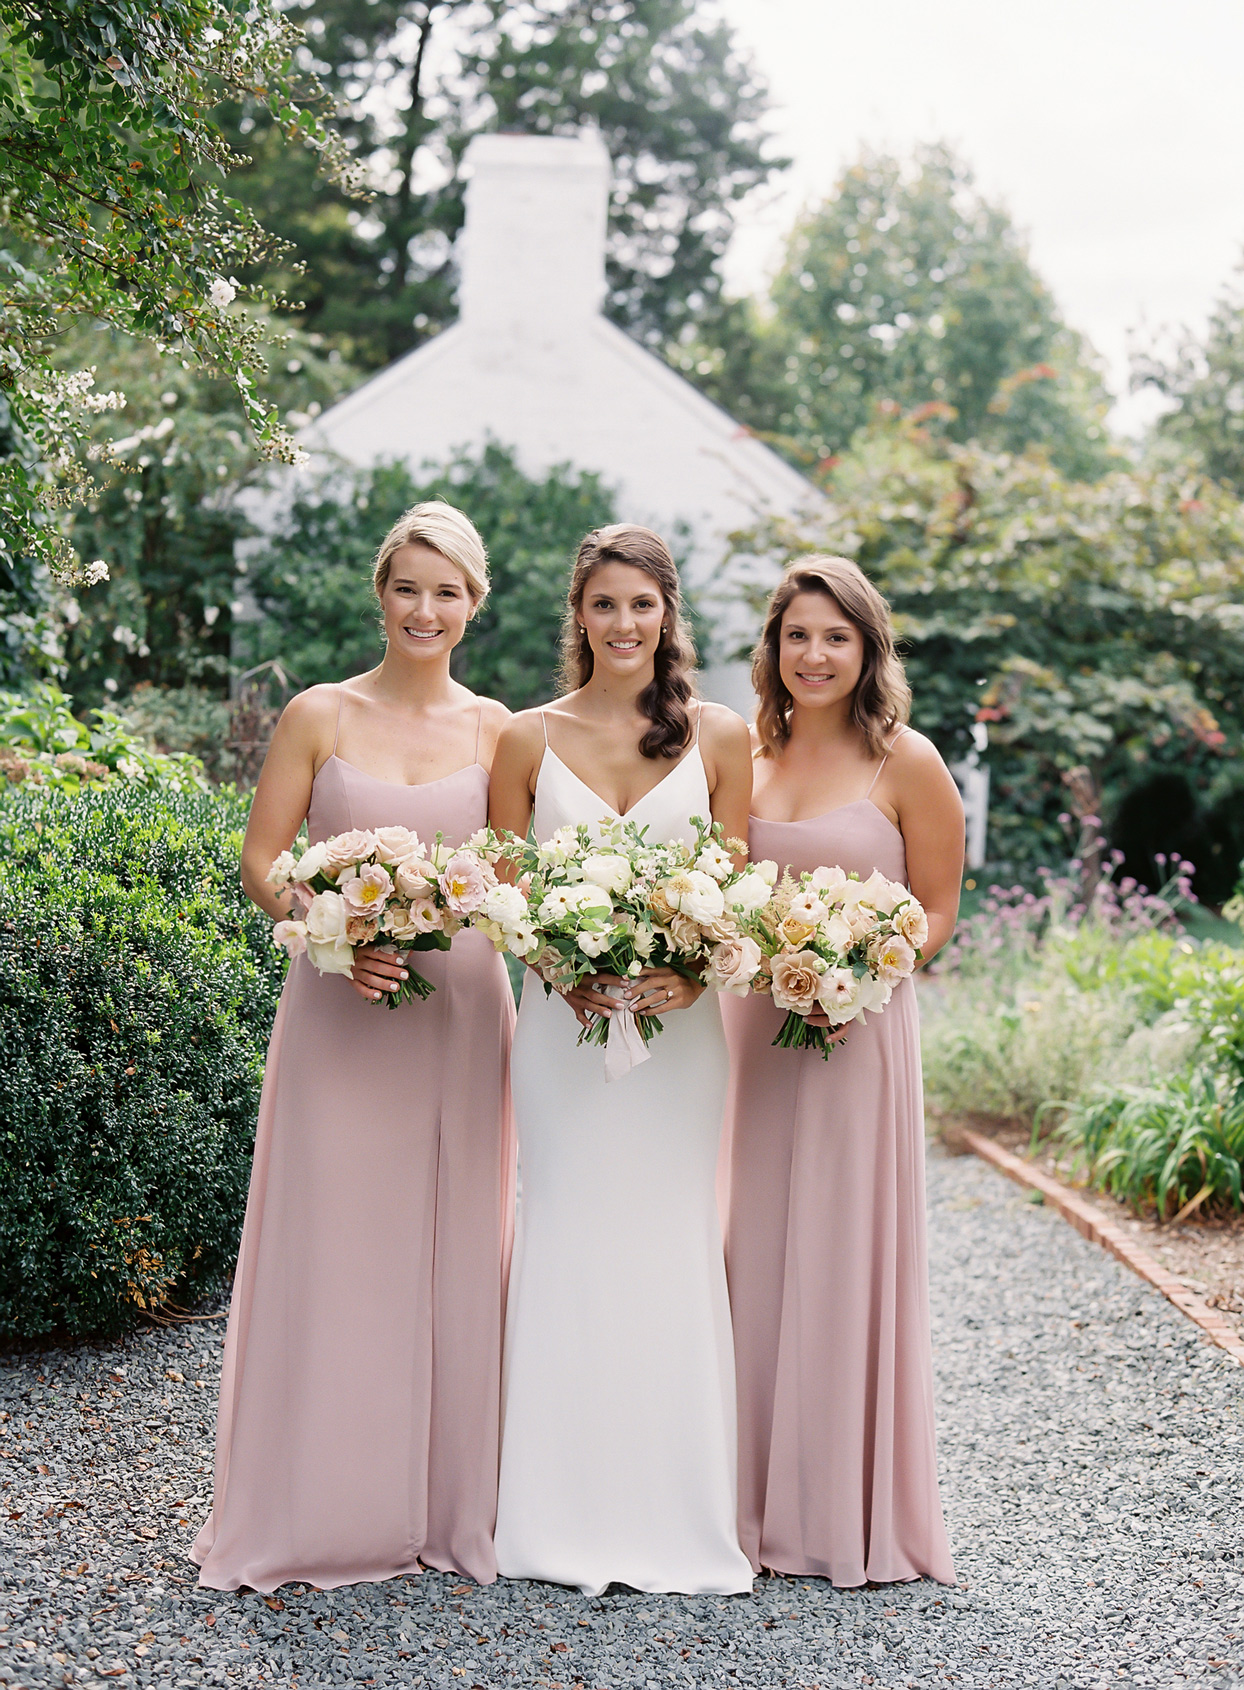 Bridesmaids in Jenny Yoo gowns in dusty rose